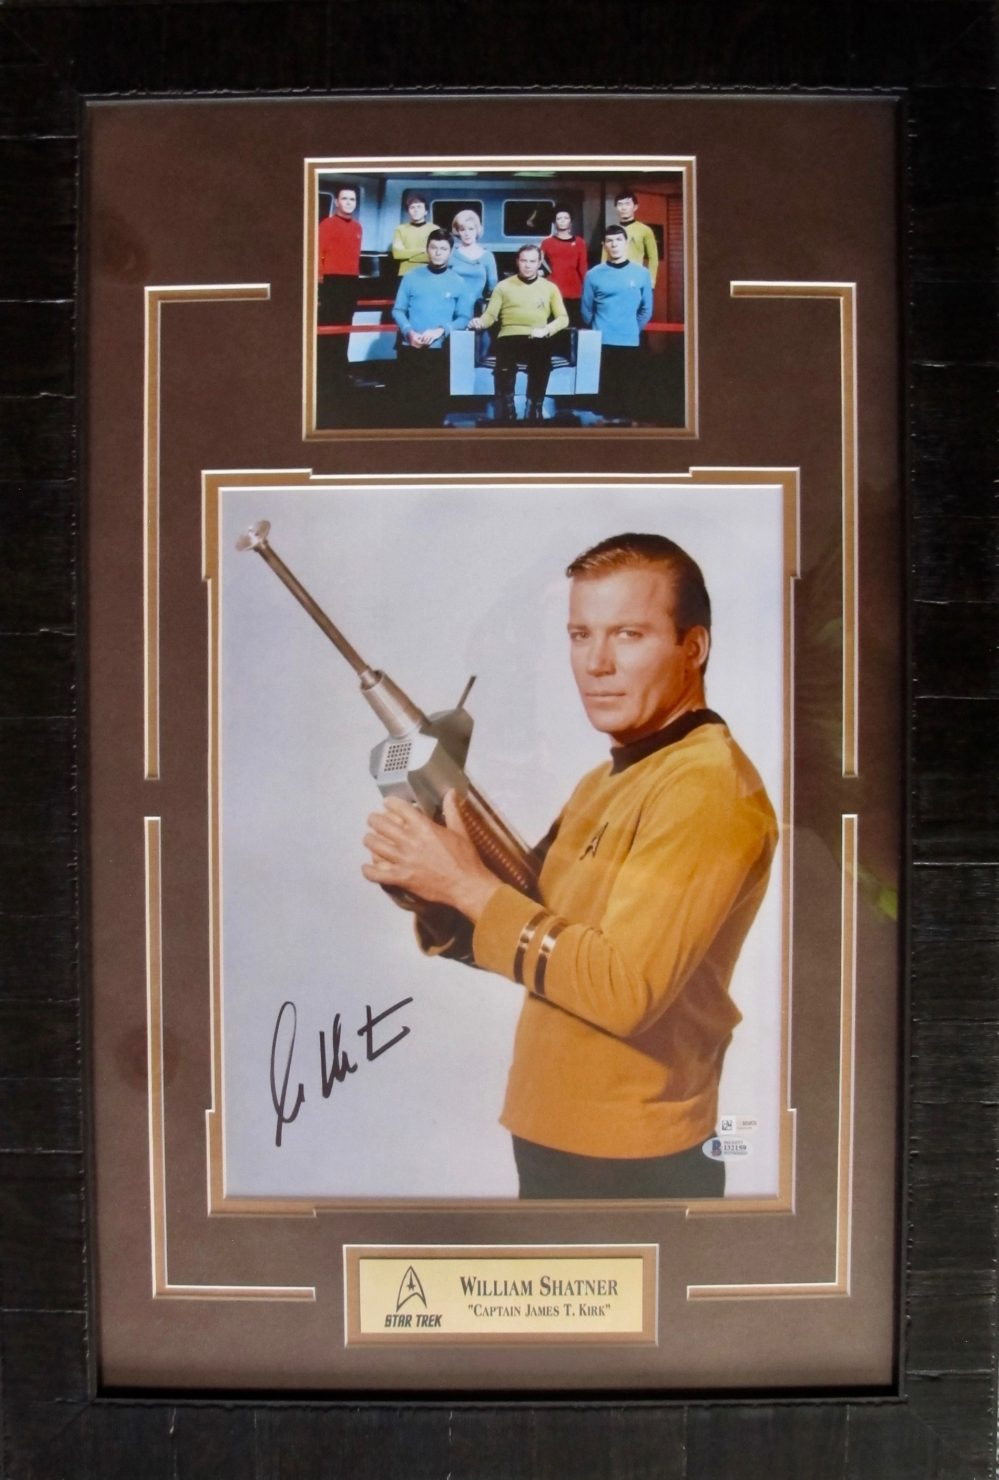 WILLIAM SHATNER Large Signed Framed Autographed Picture STAR TREK with Beckett COA